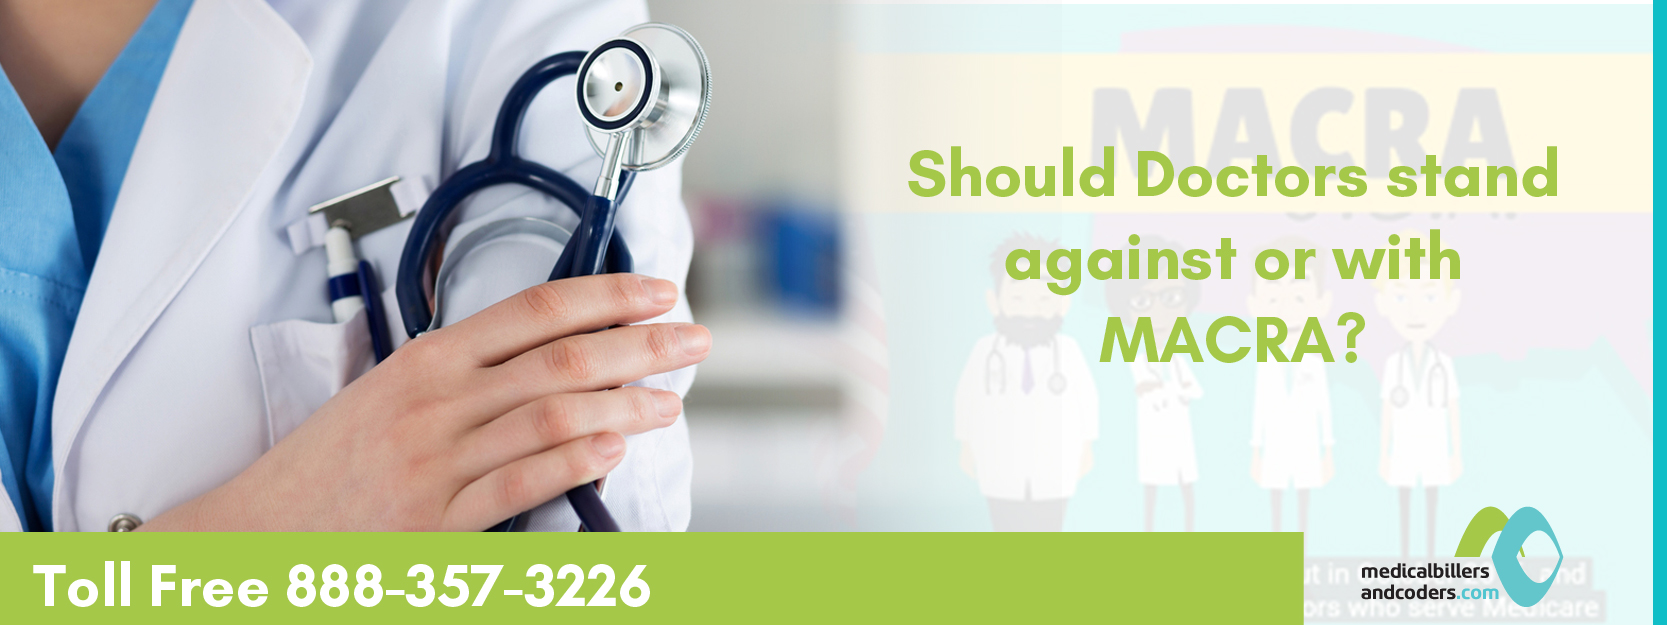 should-doctors-stand-against-or-with-macra